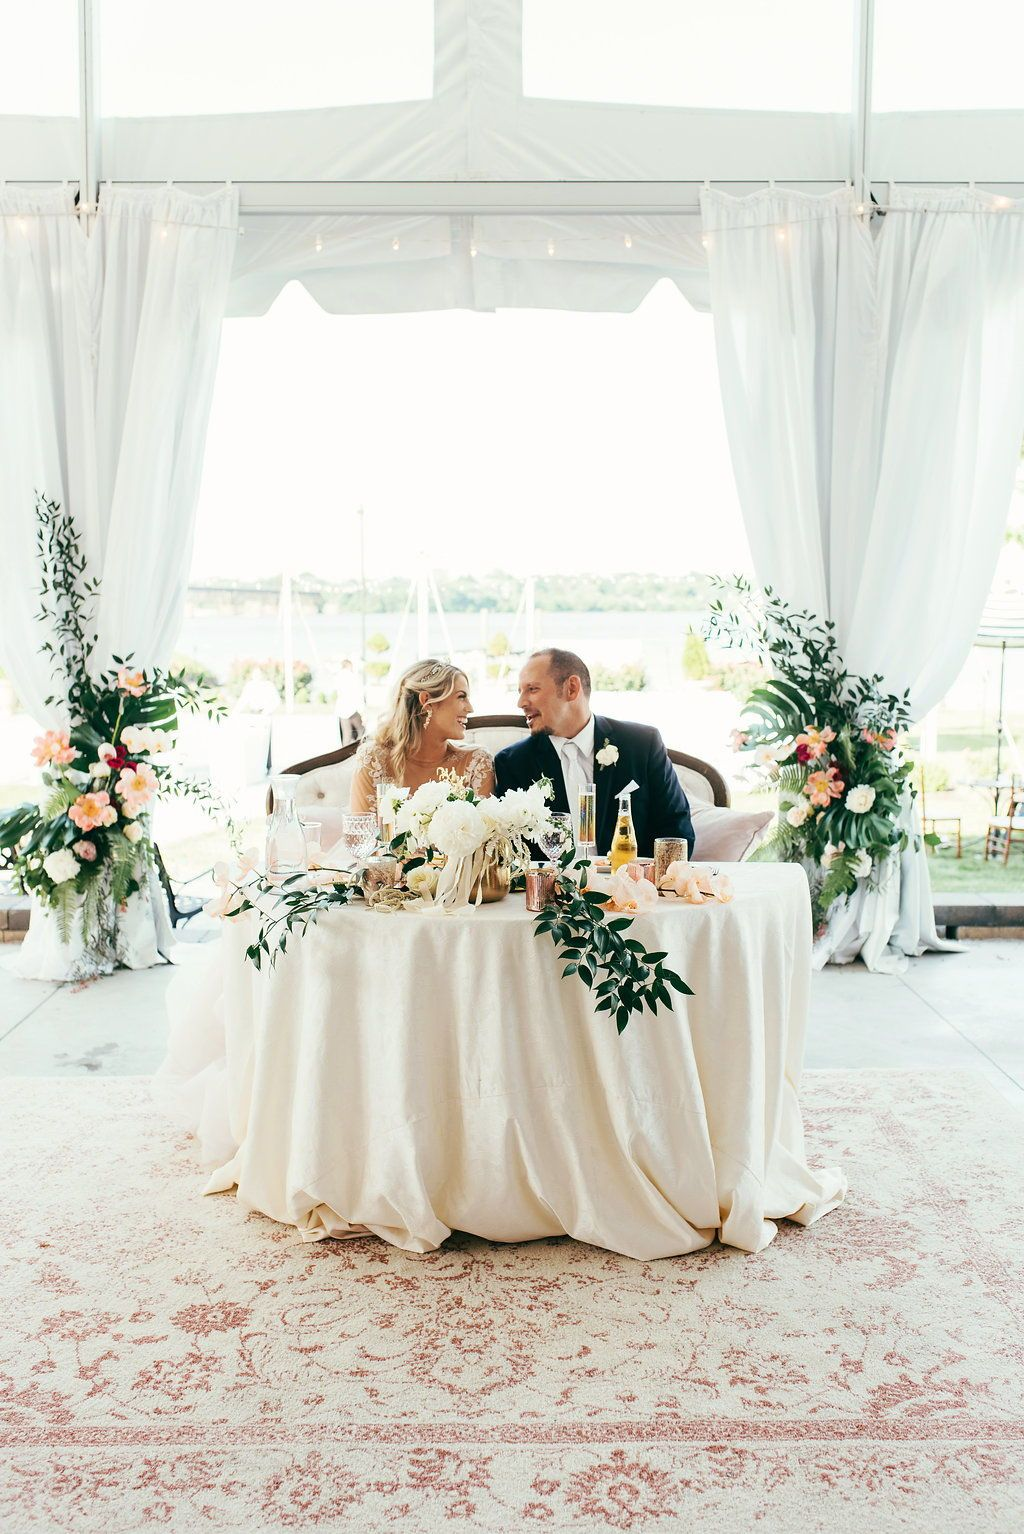 Pin On Sweetheart Table Inspiration